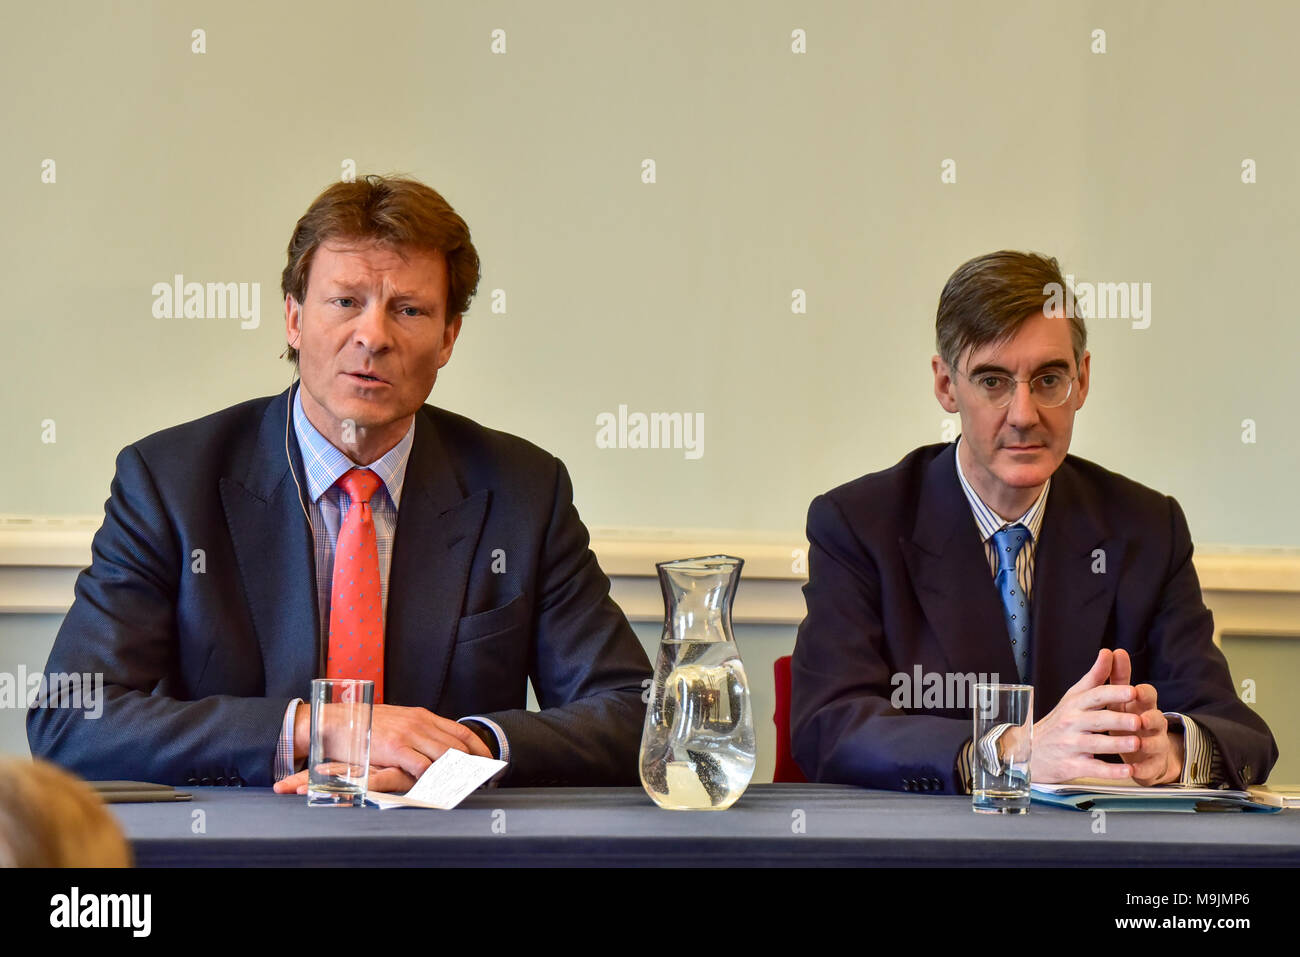 "London, United Kingdom. 27 March 2018. Jacob Rees-Mogg gives a major Brexit speech at a Leave Means Leave event in central London. Tory MP Rees-Mogg slammed Brussels for its ""bullying"" approach and said that they have entered negotiations ""in the spirit of they know best and we must do as we are told"". Pictured: Jacob Rees-Mogg & Richard Tice  Credit: Peter Manning/Alamy Live News - Stock Image"